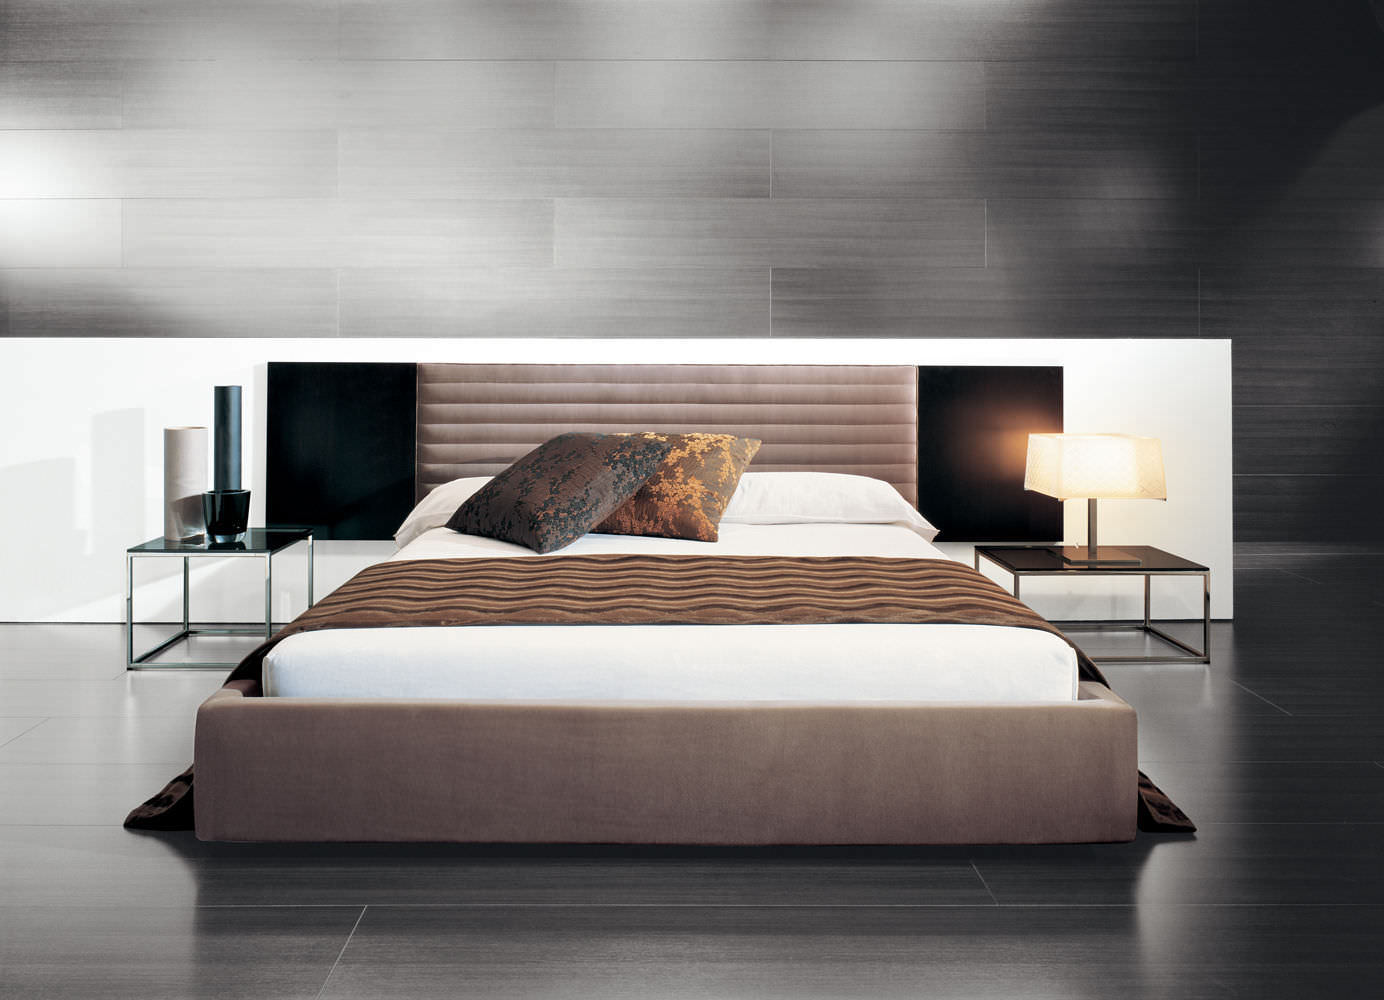 Double bed designs in wood -  Double Bed Contemporary Wood Veneer Upholstered Alma By David Casadesus Casades S